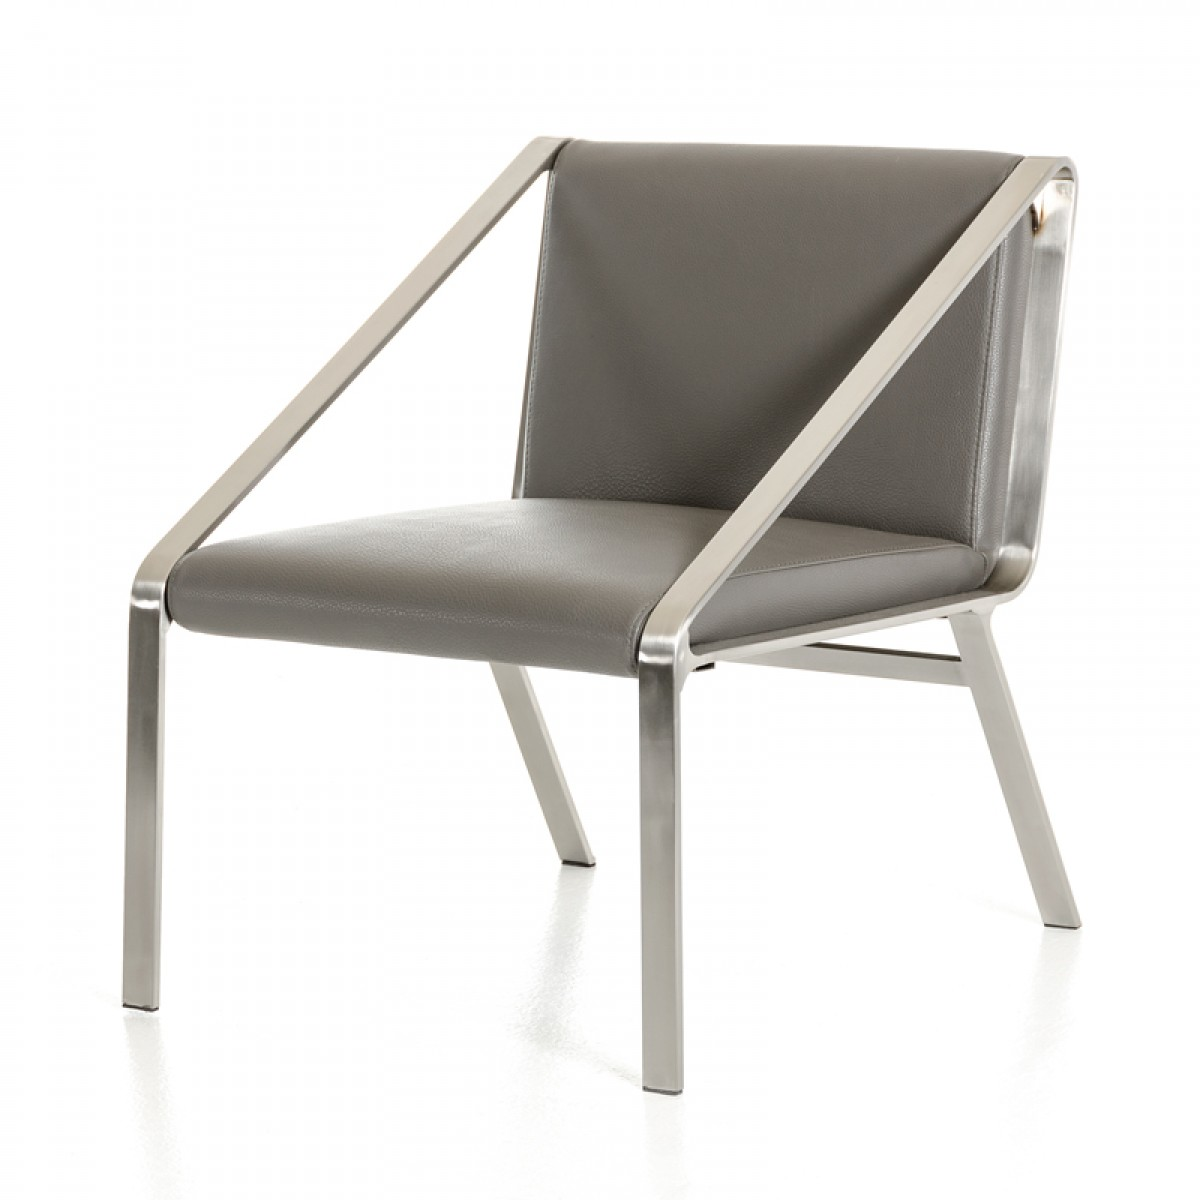 check out the new Jerry Accent Chair Grey available at AdvancedInteriorDesigns.com